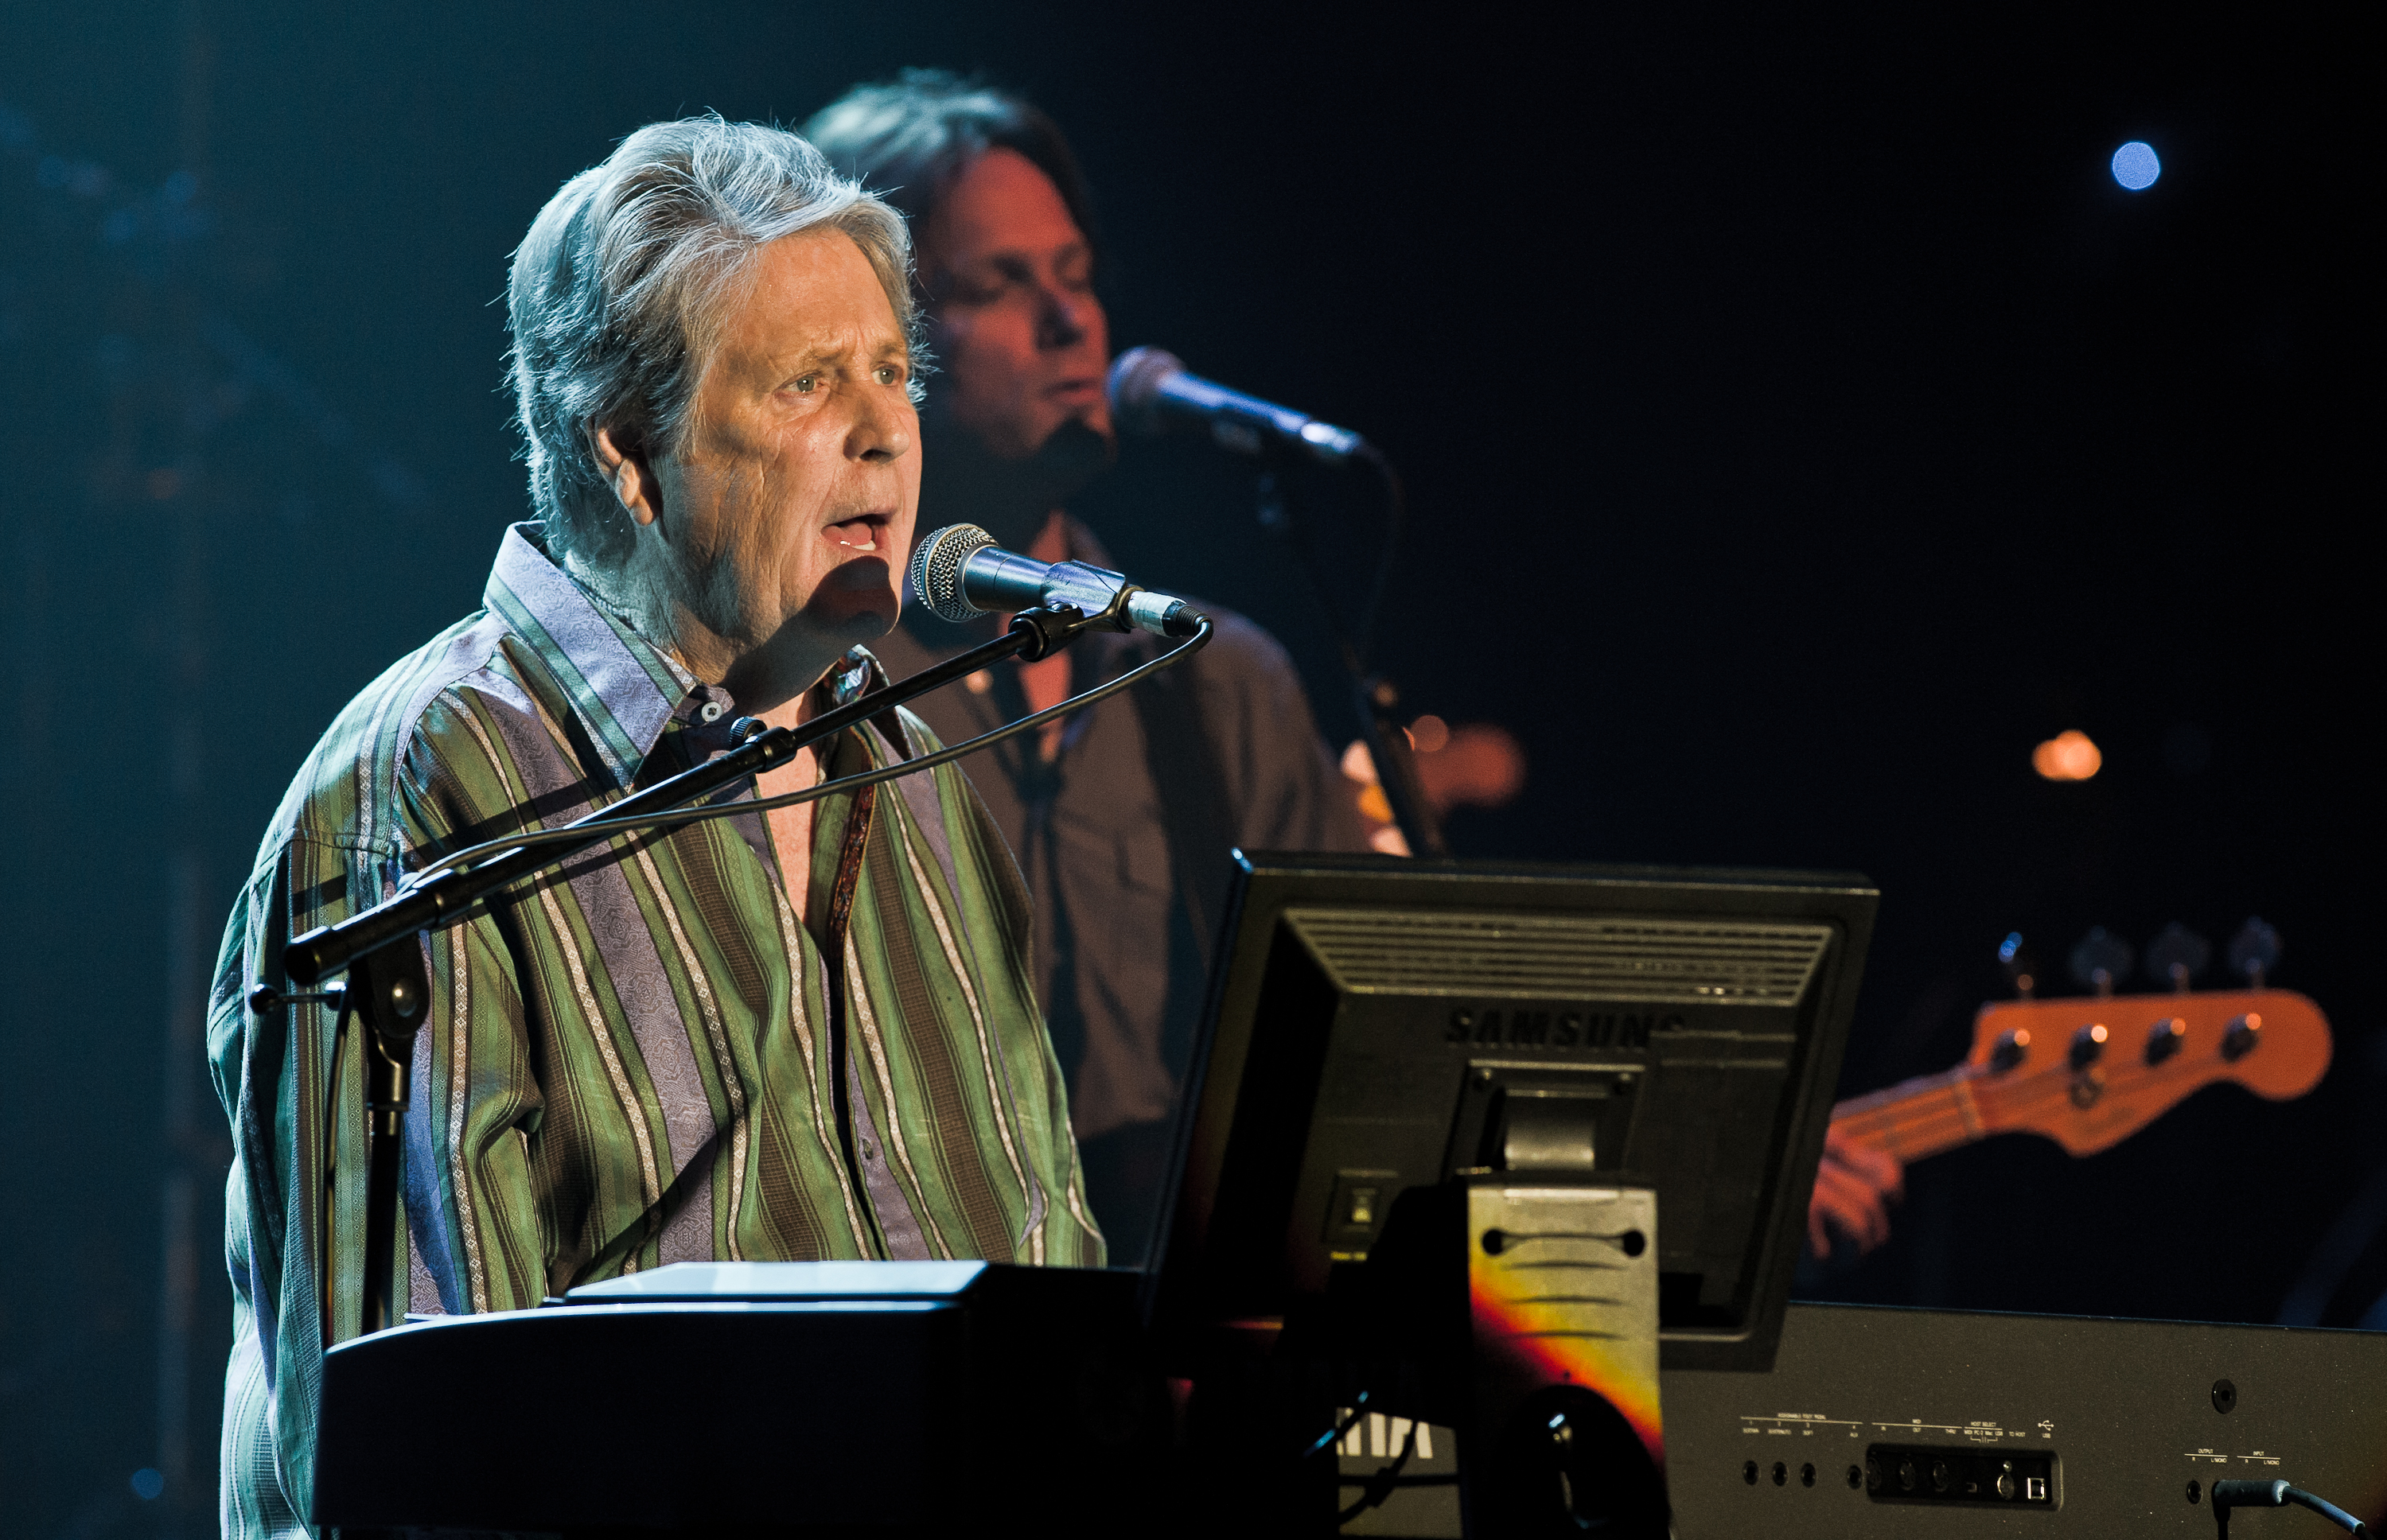 PARIS, FRANCE - SEPTEMBER 20:  Brian Wilson performs at Le Casino de Paris on September 20, 2011 in Paris, France. (Photo by